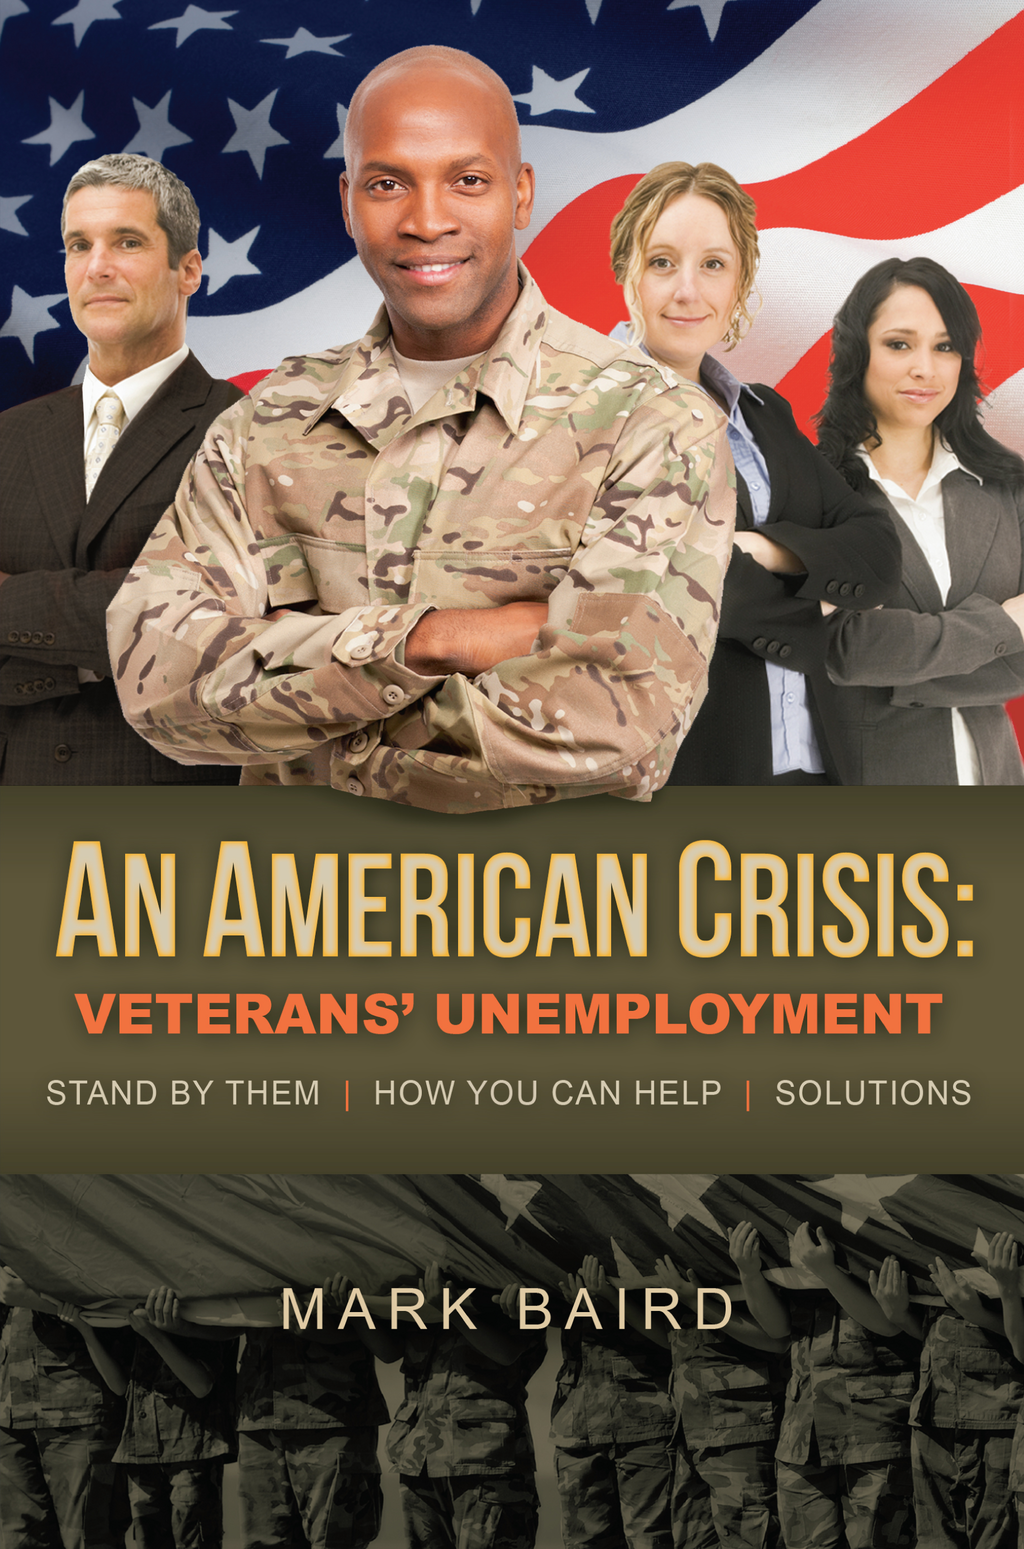 An American Crisis: Veterans' Unemployment